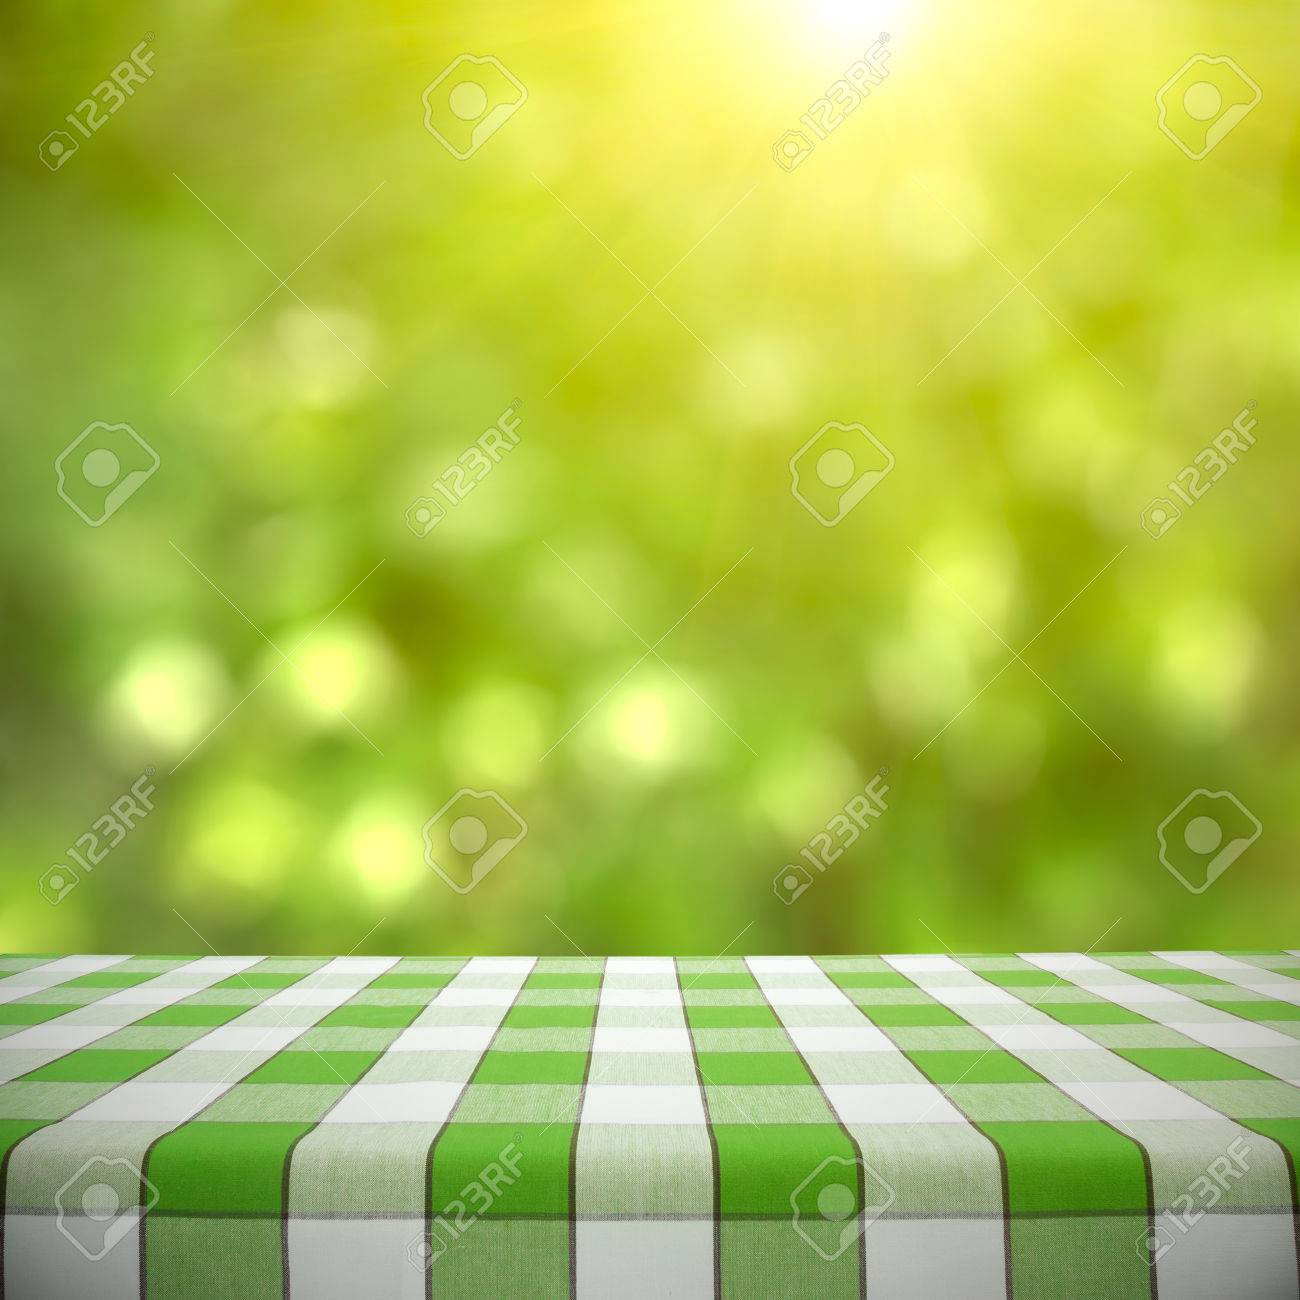 Picnic Table Background empty picnic table on green foliage bokeh background stock photo